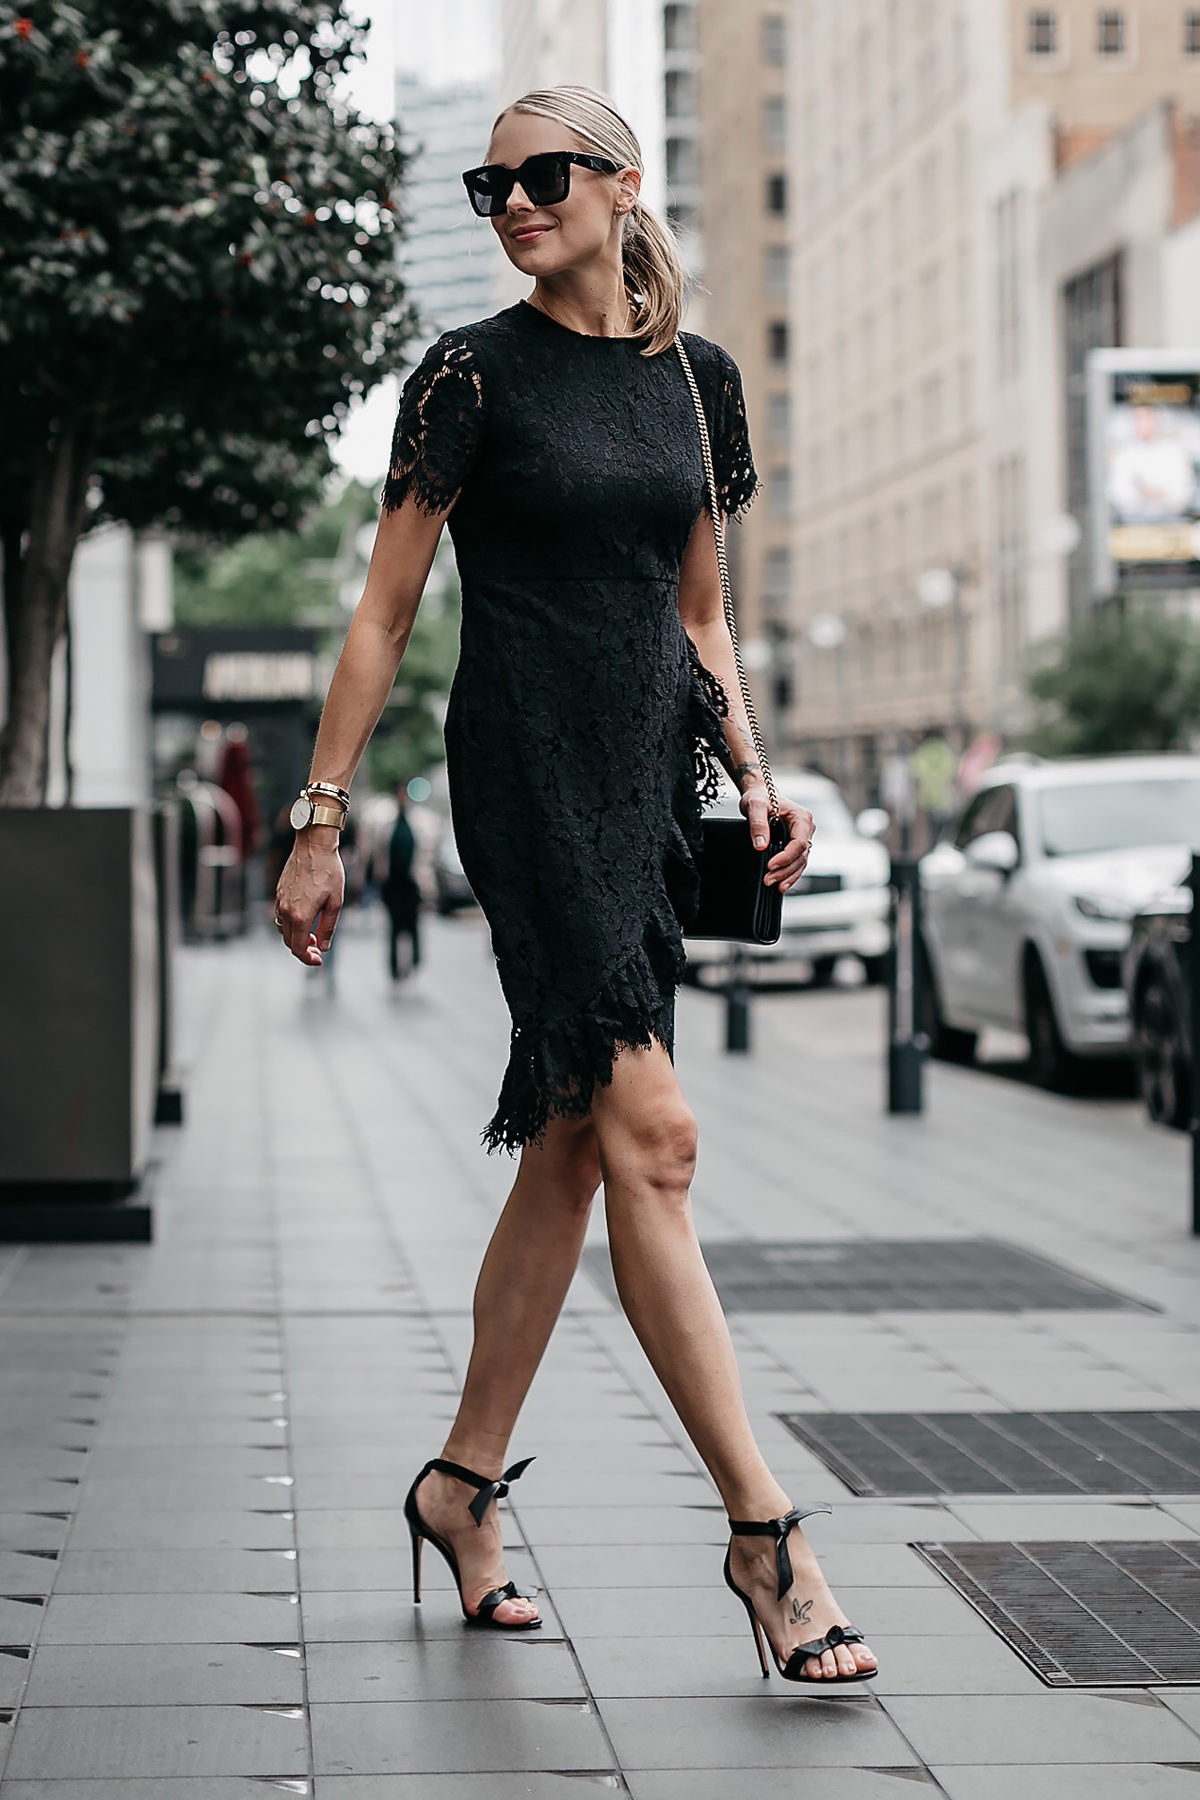 Blonde Woman Wearing Black Lace Dress Alexandre Birman Black Tie Bow Heeled Sandals Fashion Jackson Dallas Blogger Fashion Blogger Street Style